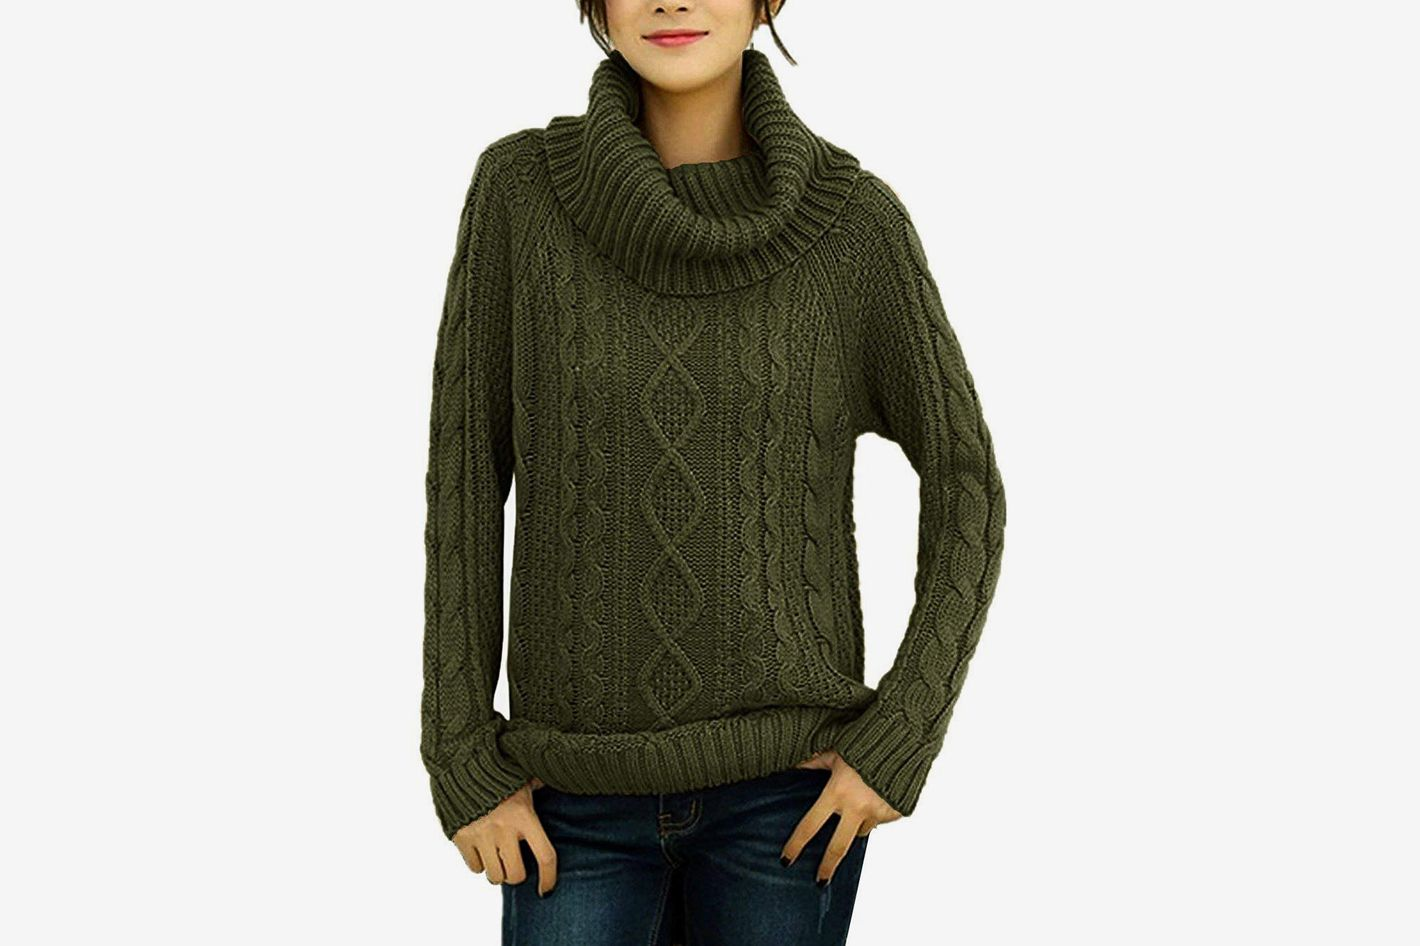 8e35e2118b v28 Women s Korean Design Turtle Cowl Neck Ribbed Cable Knit Long Sweater  Jumper